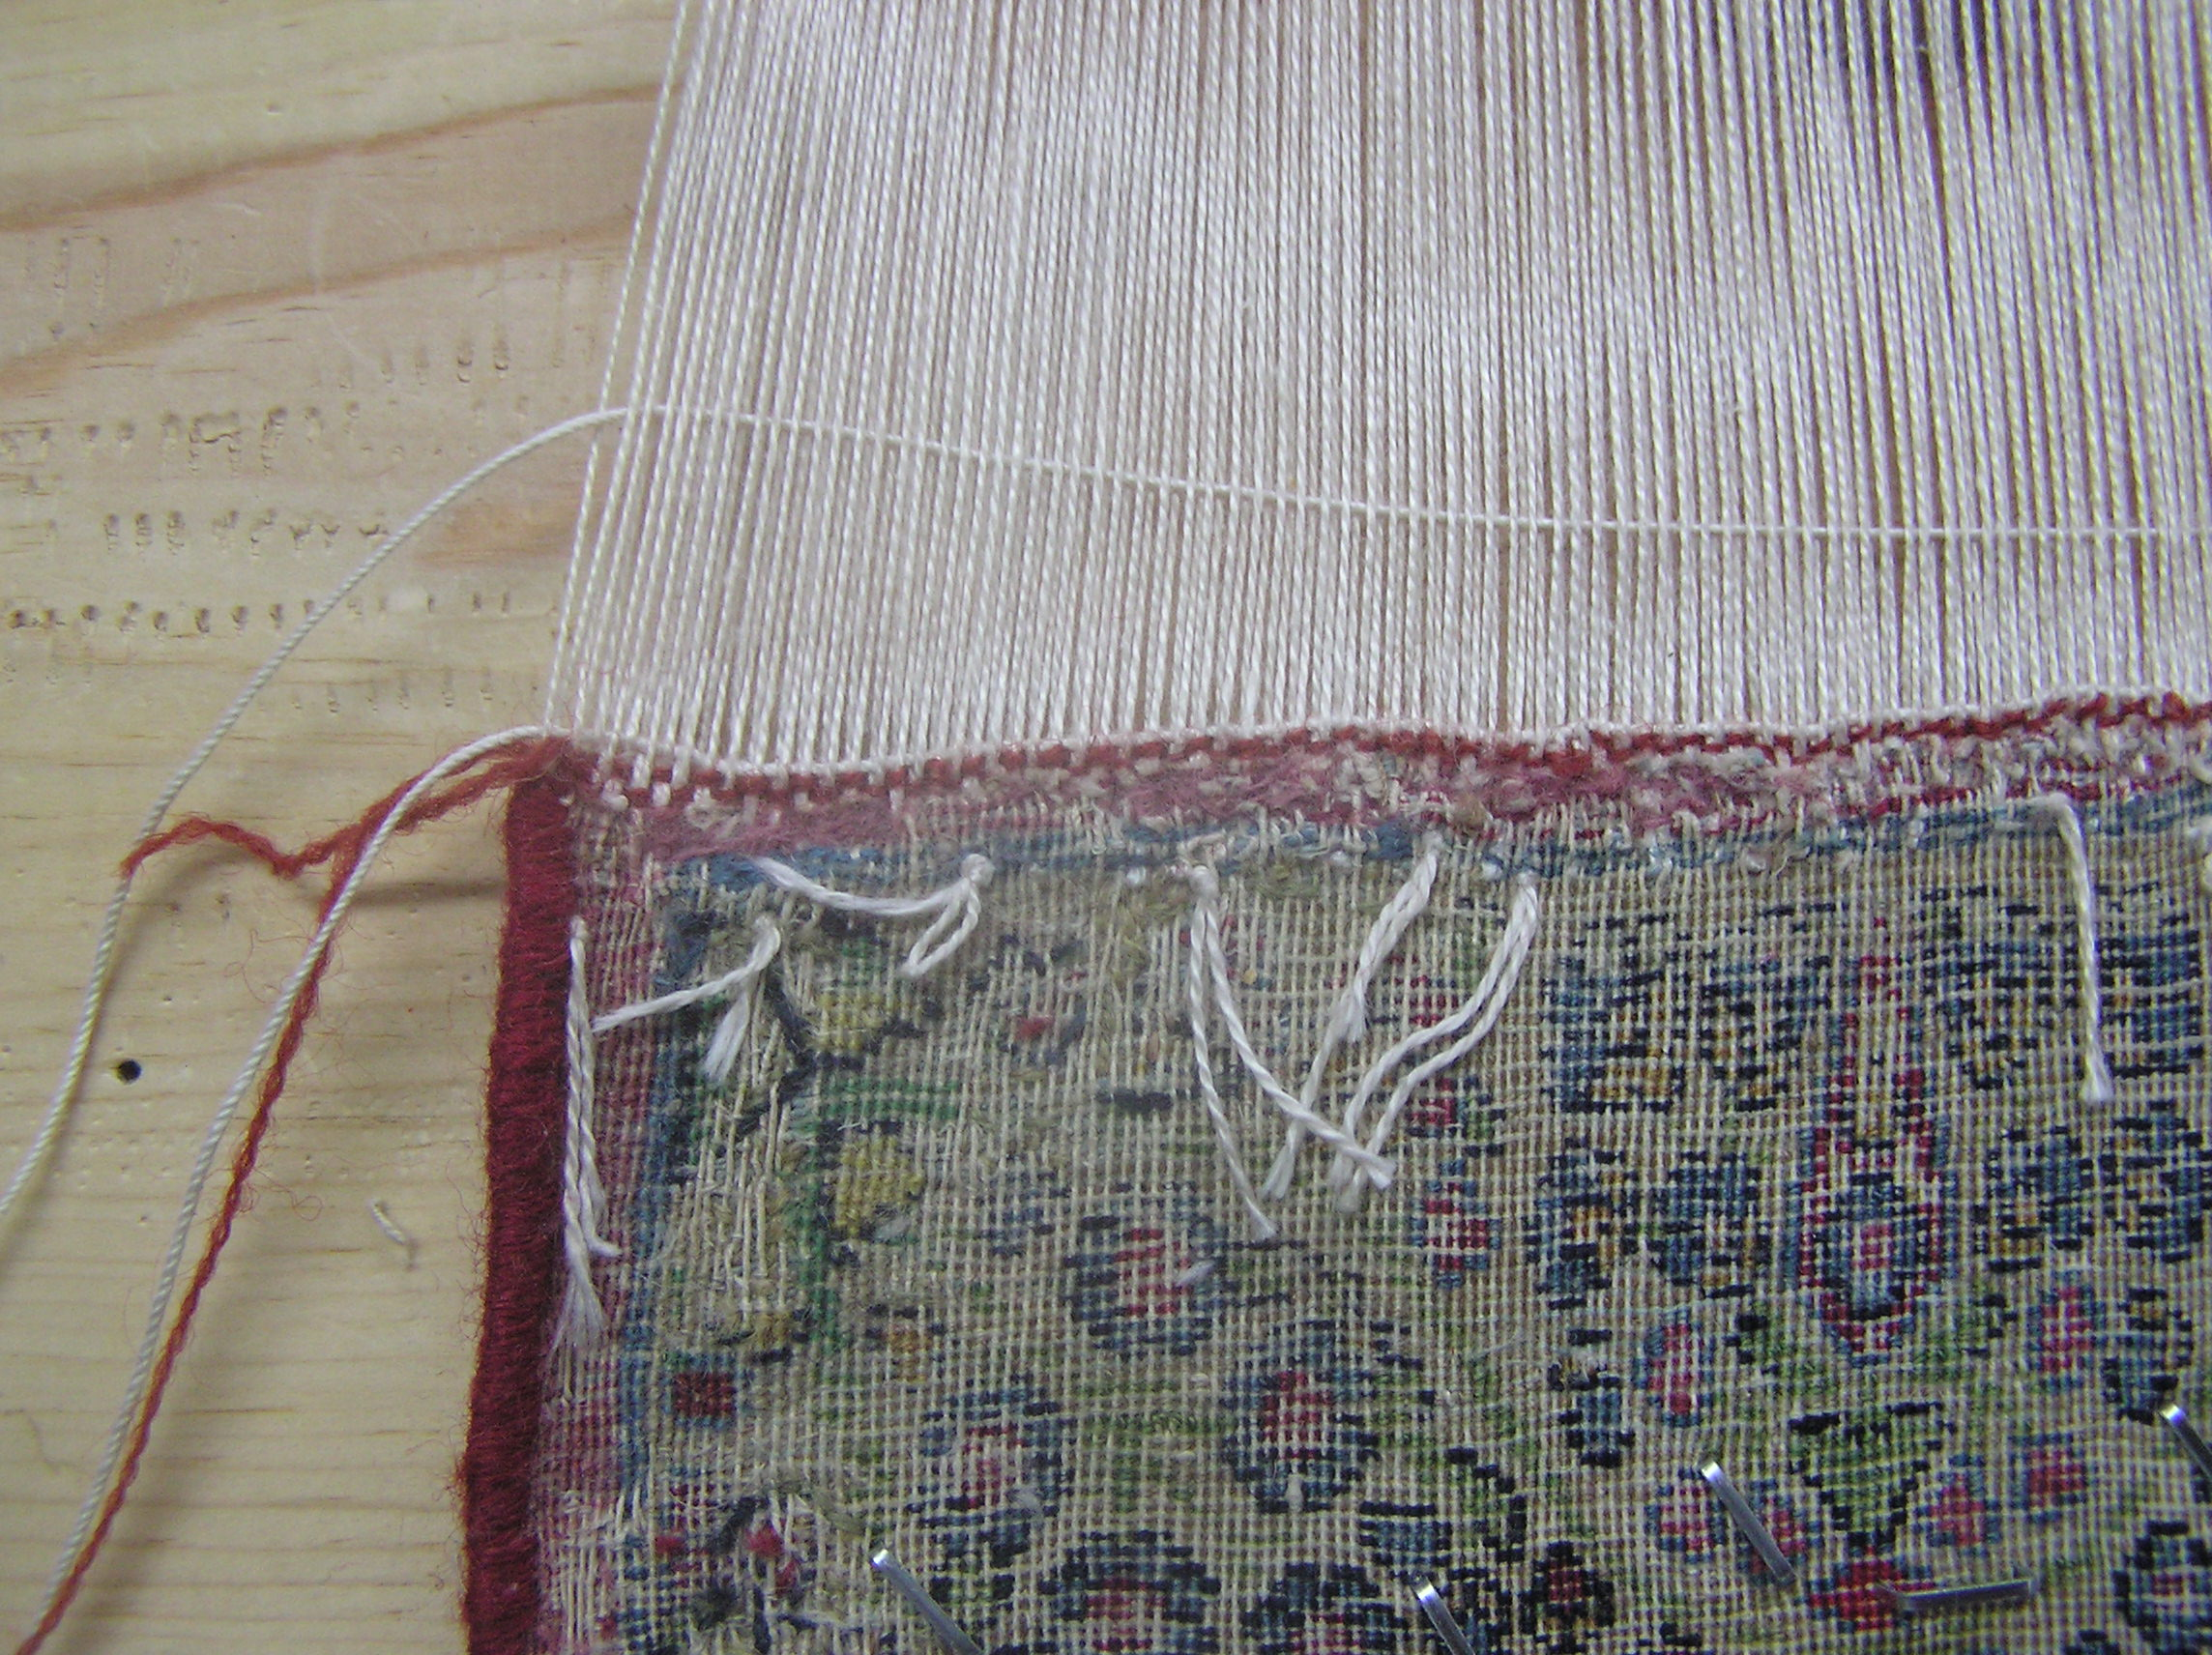 The previous repair with red yarn is redone properly by sarbafi